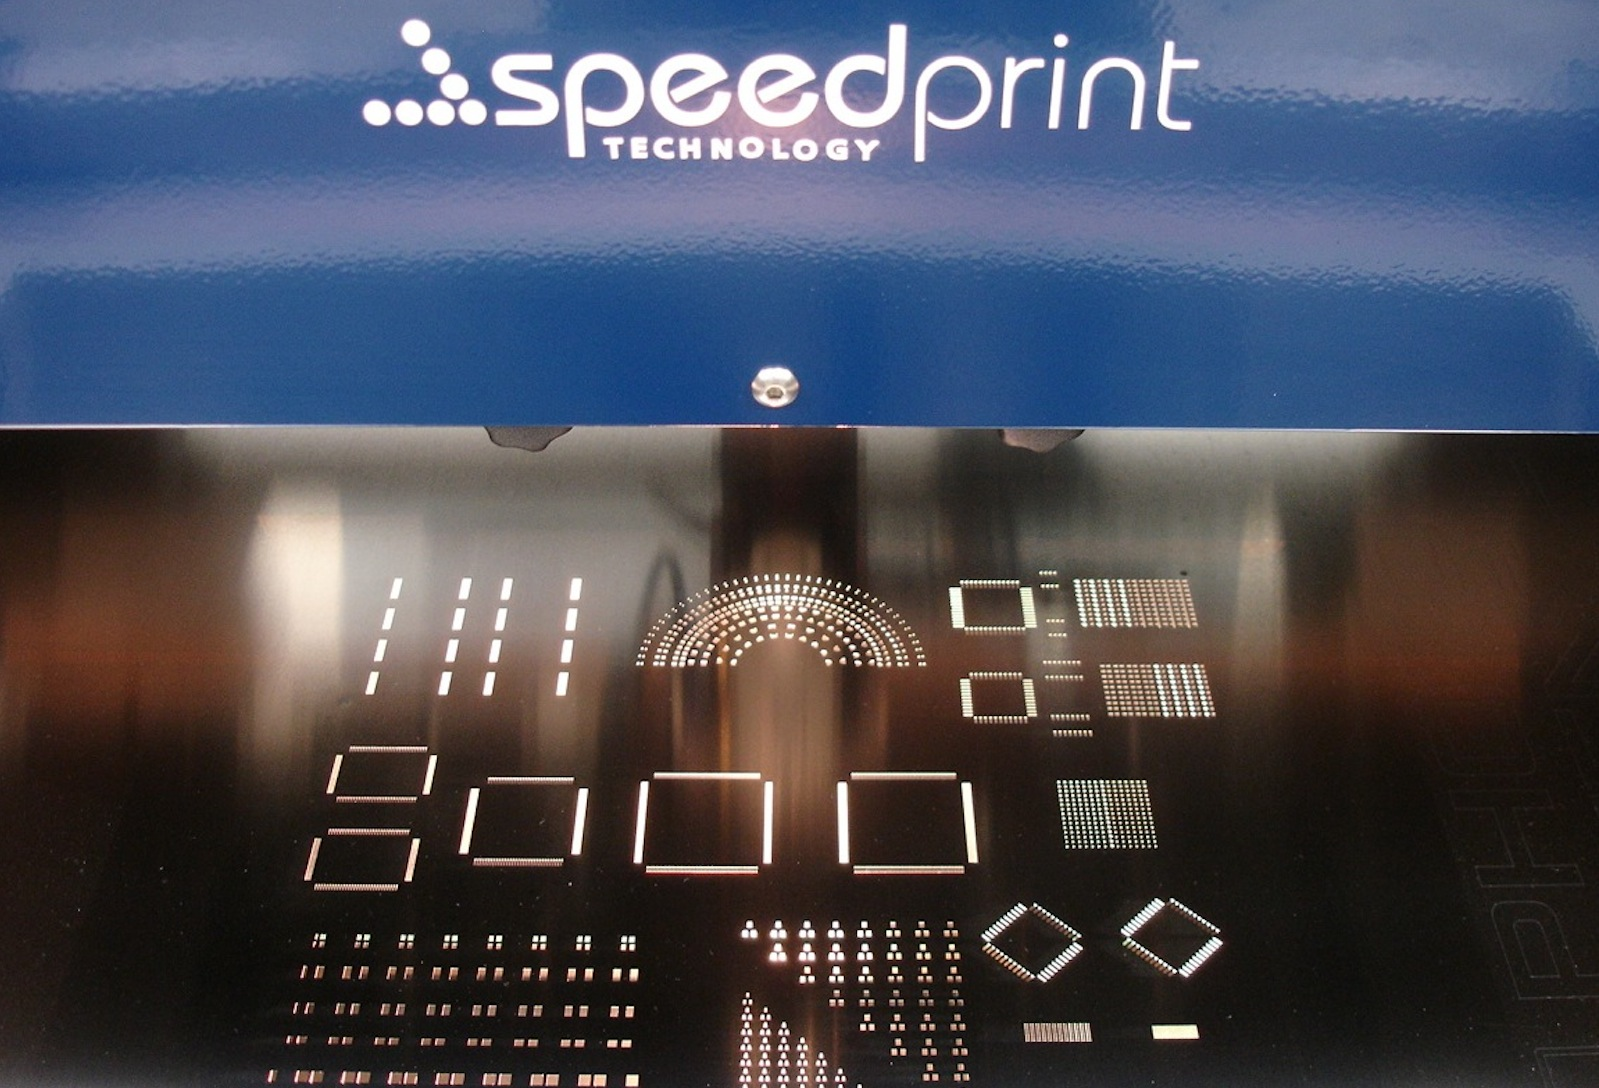 SPEEDPRINT TECHNOLOGY